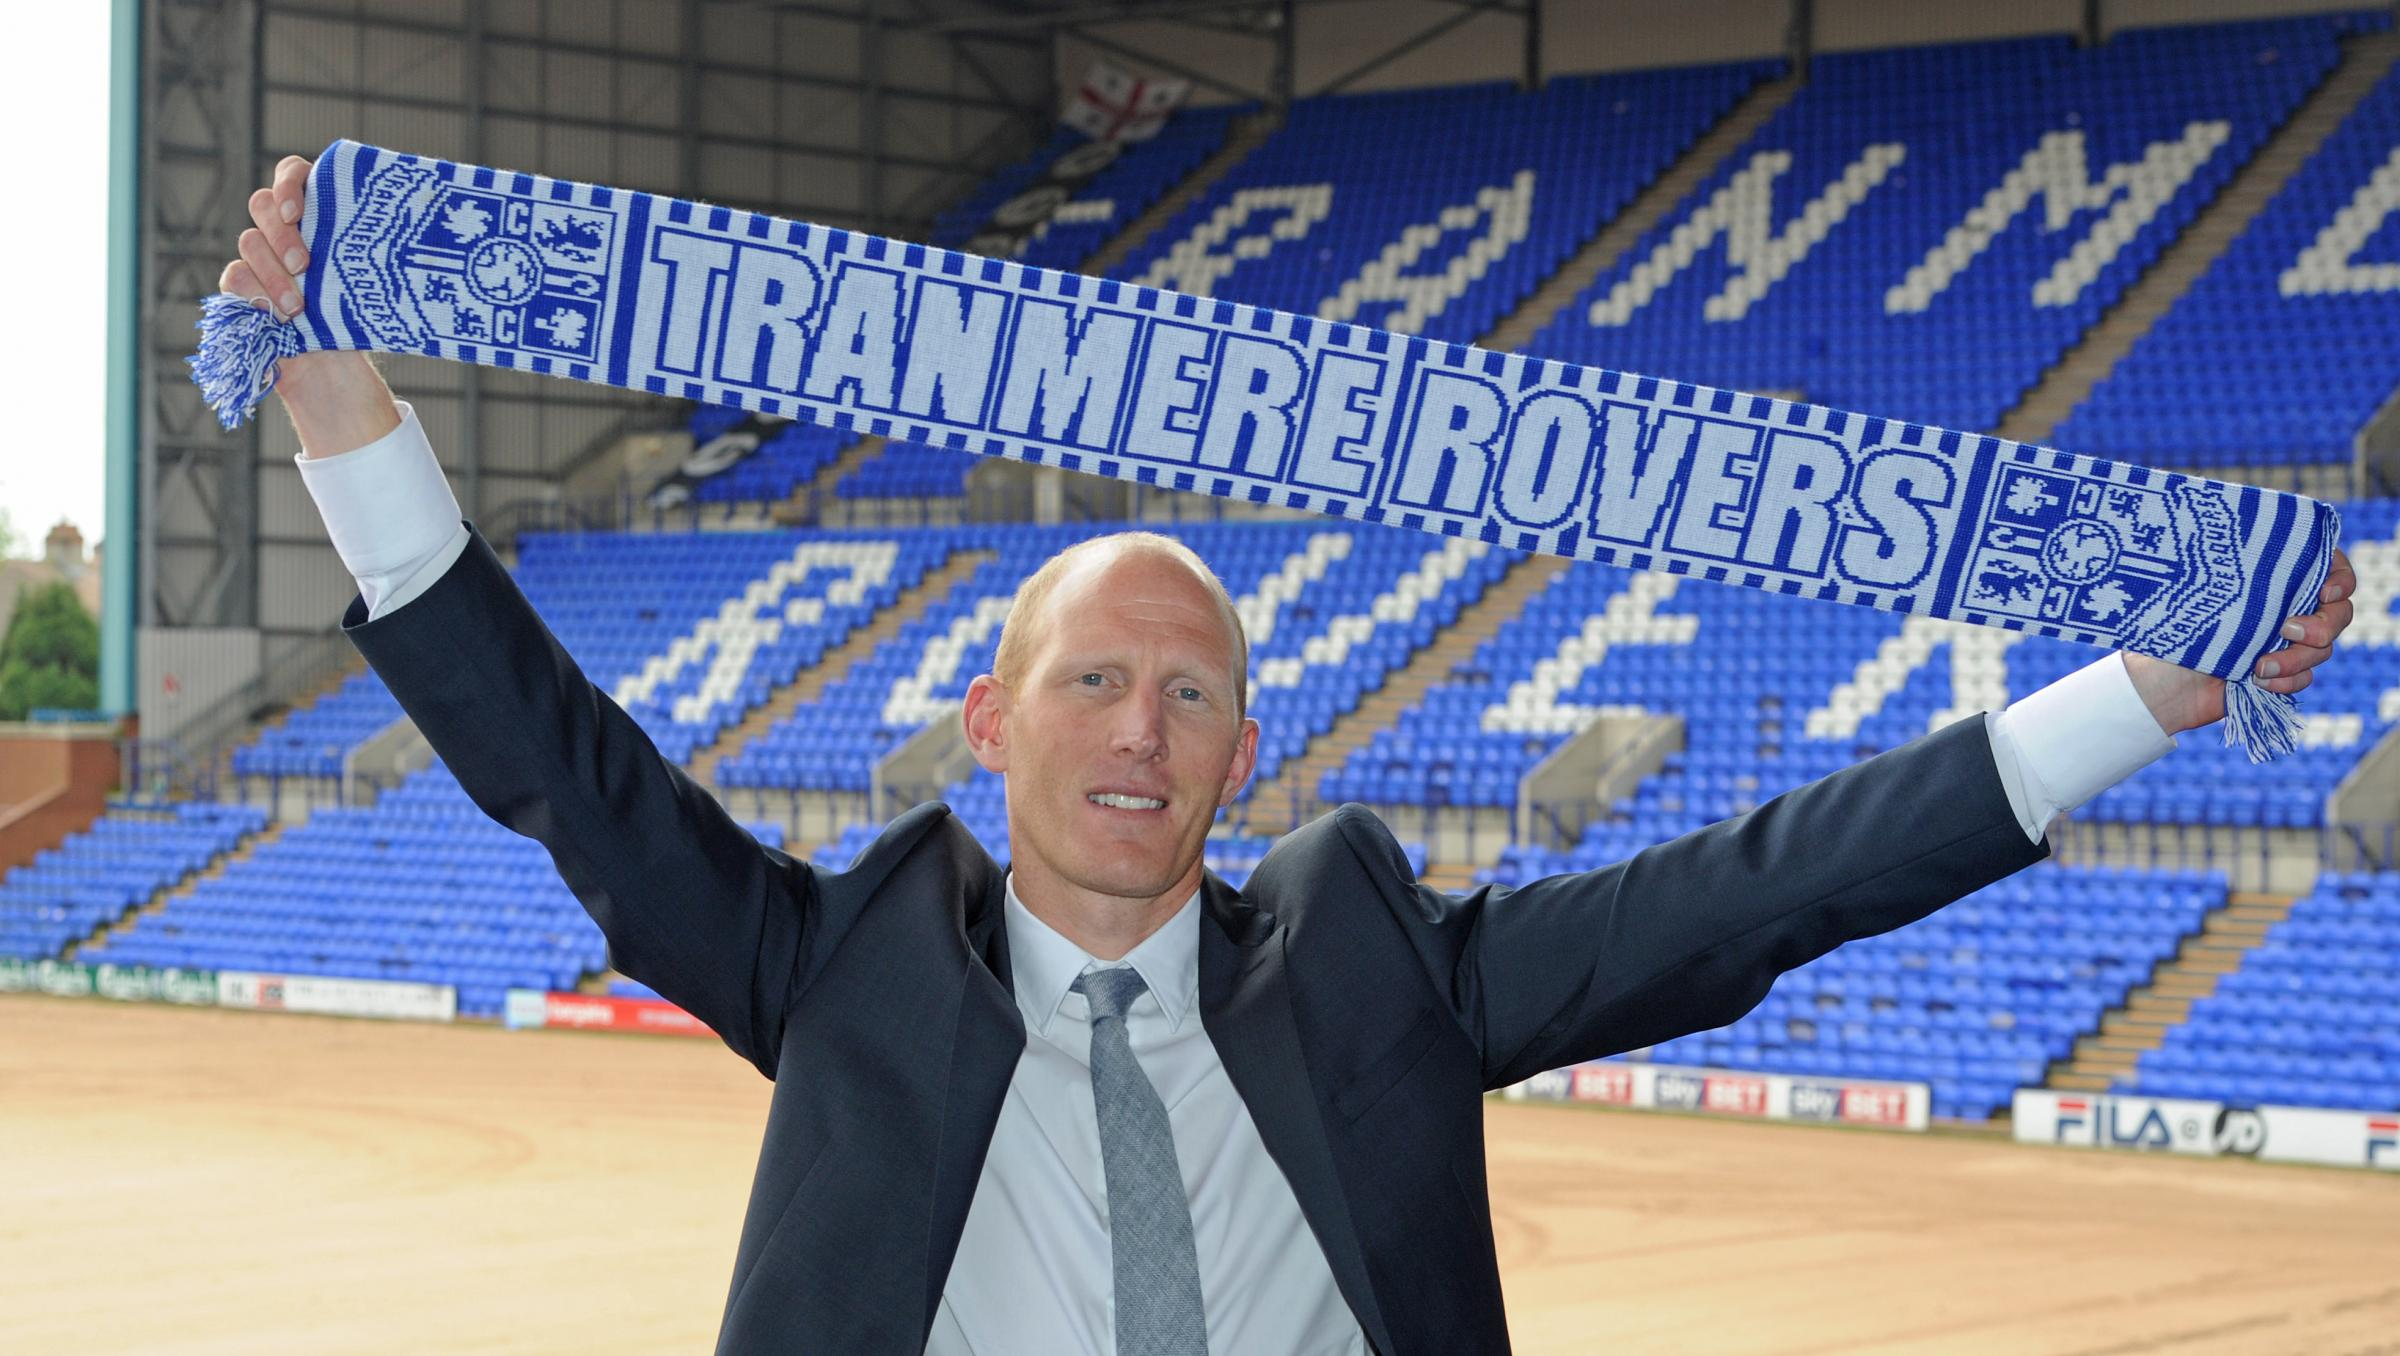 VIDEO: Tranmere Rovers appoint new manager